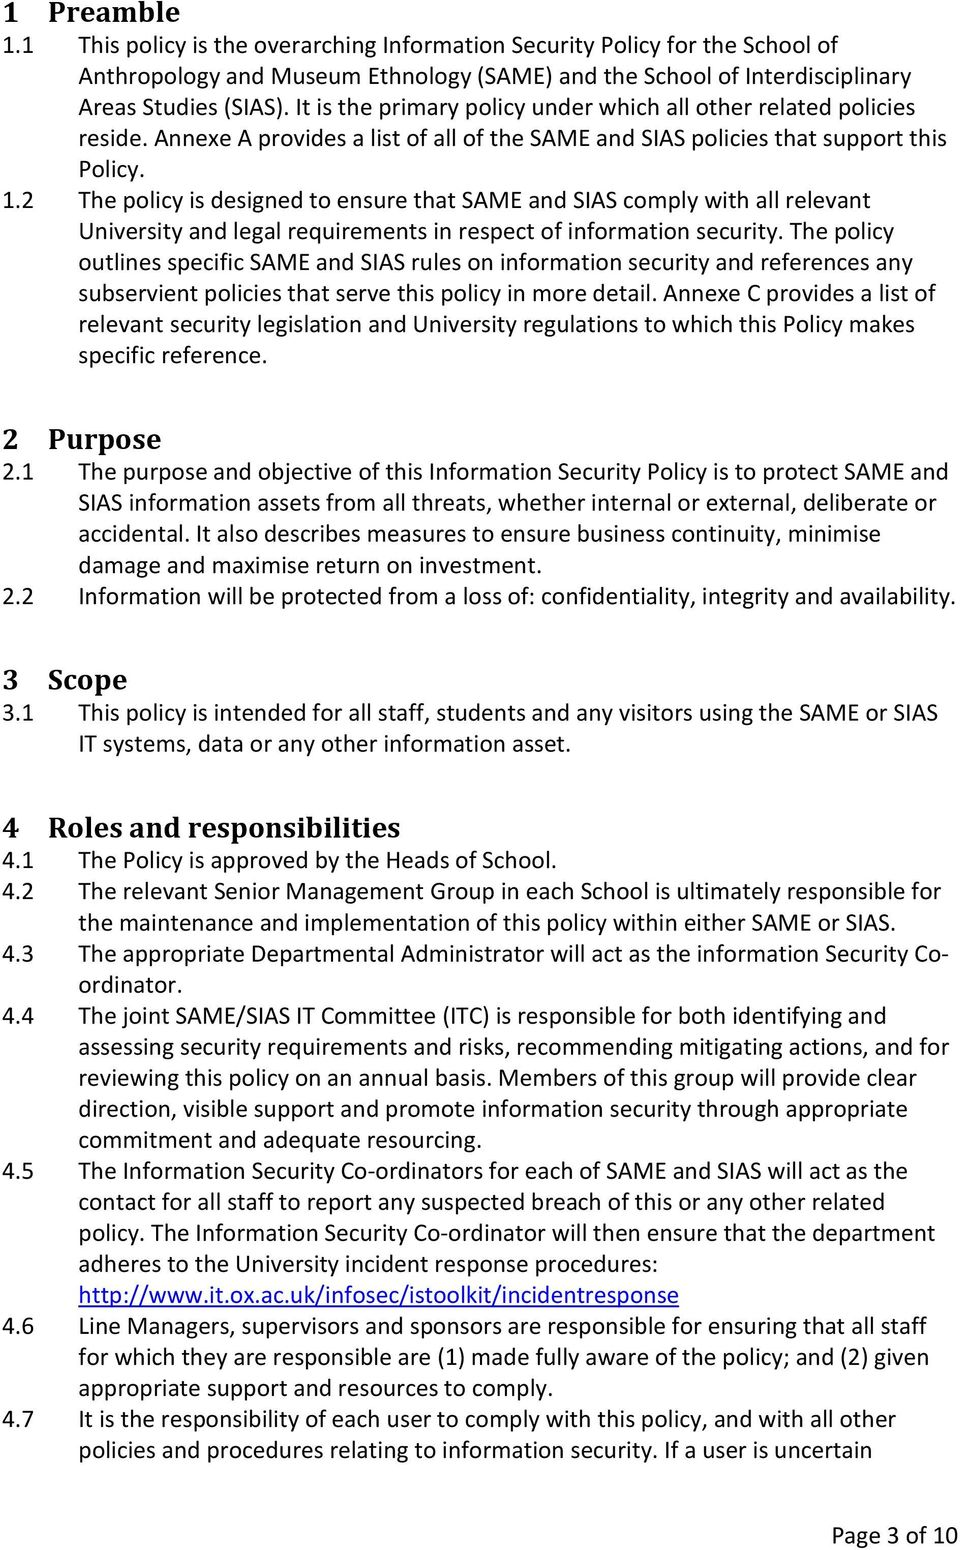 2 The policy is designed to ensure that SAME and SIAS comply with all relevant University and legal requirements in respect of information security.